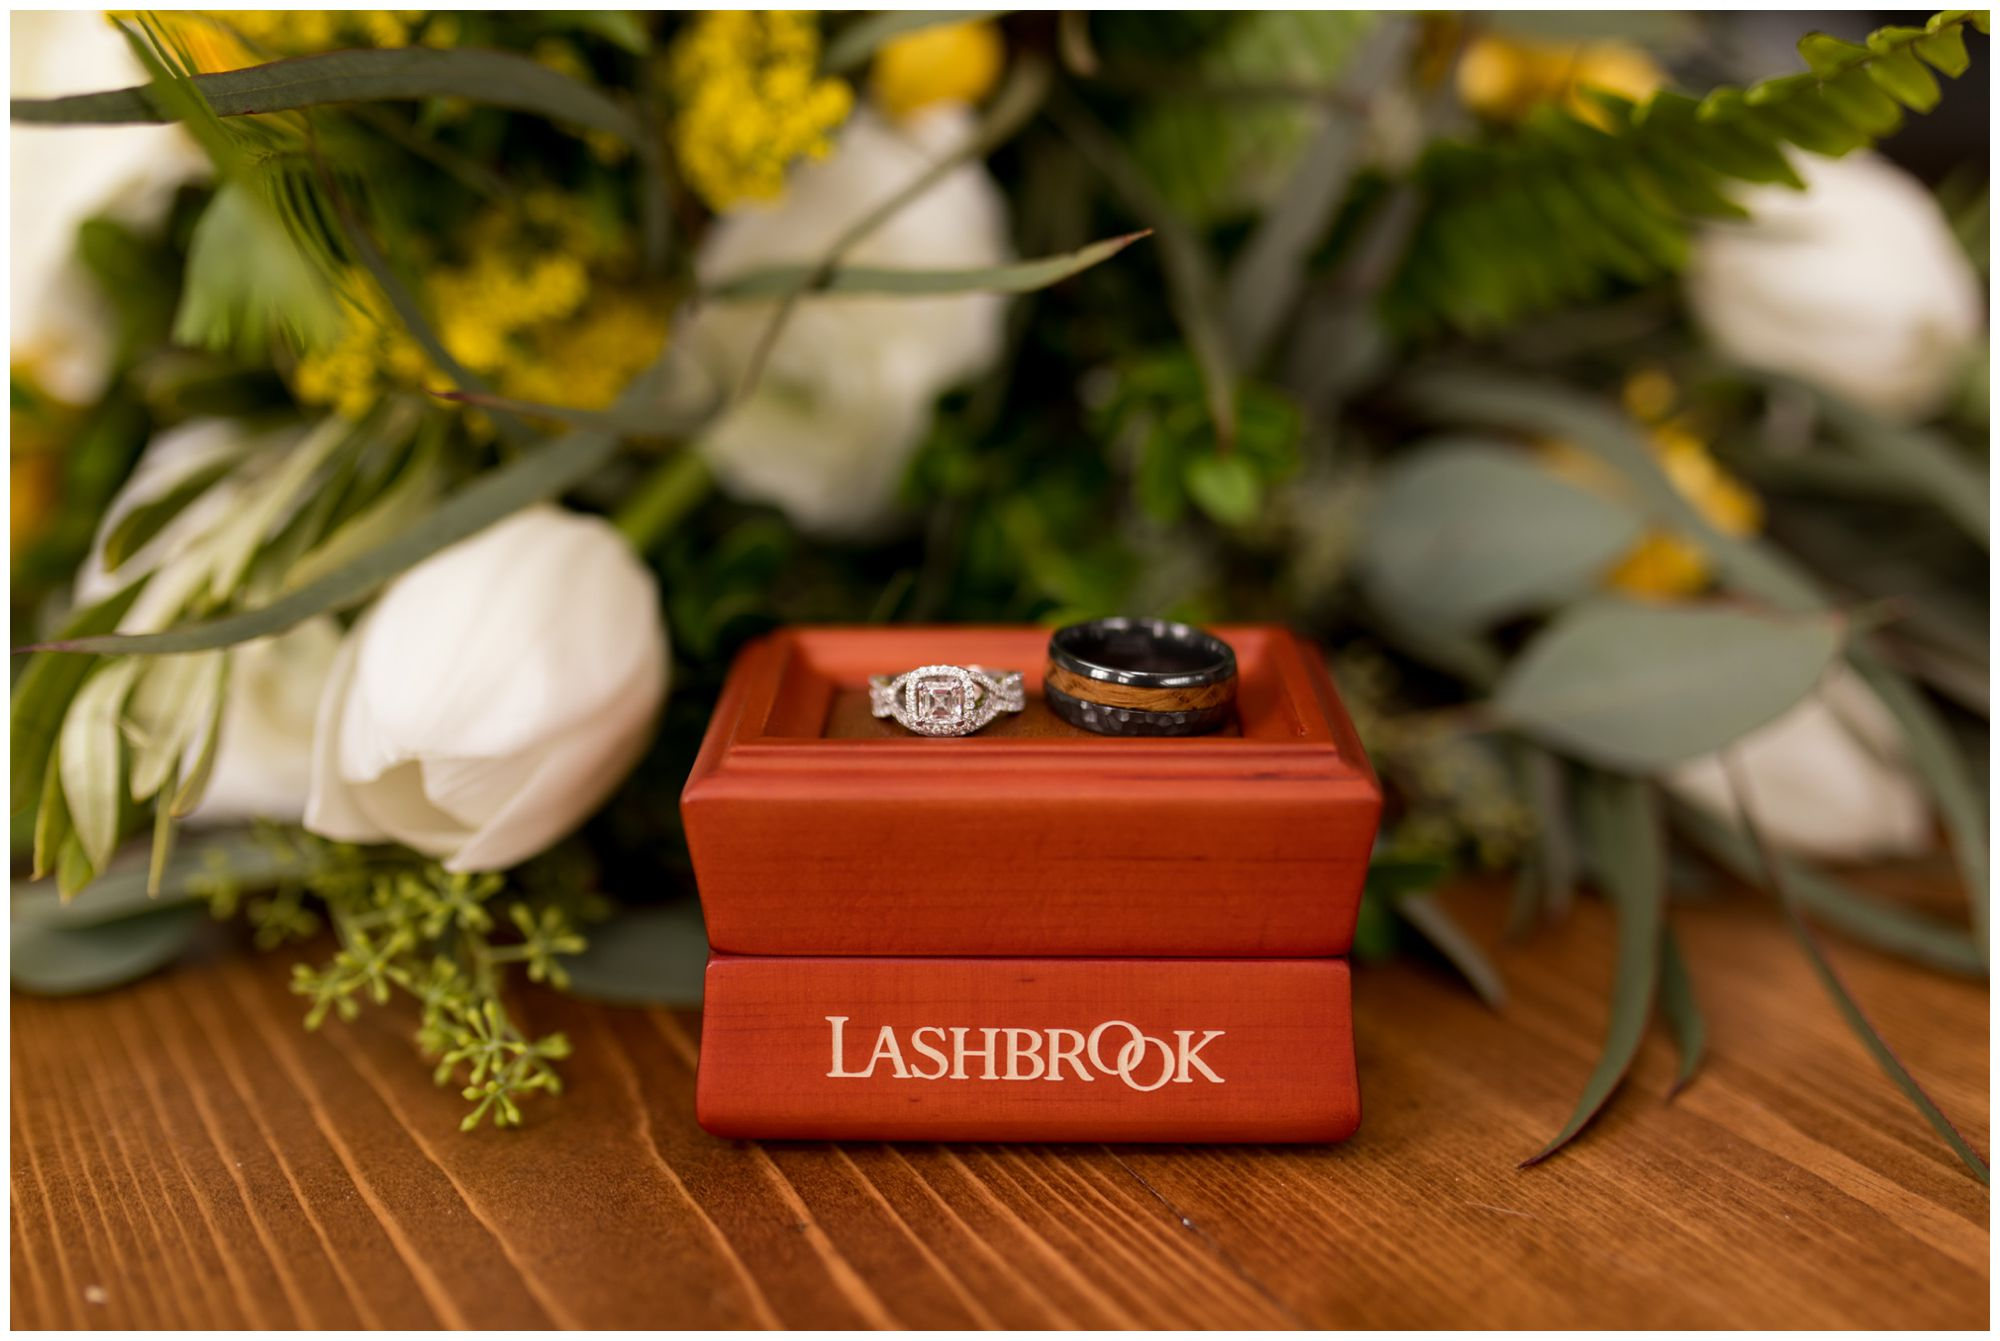 Indianapolis bride and groom rings from Lashbrook designs